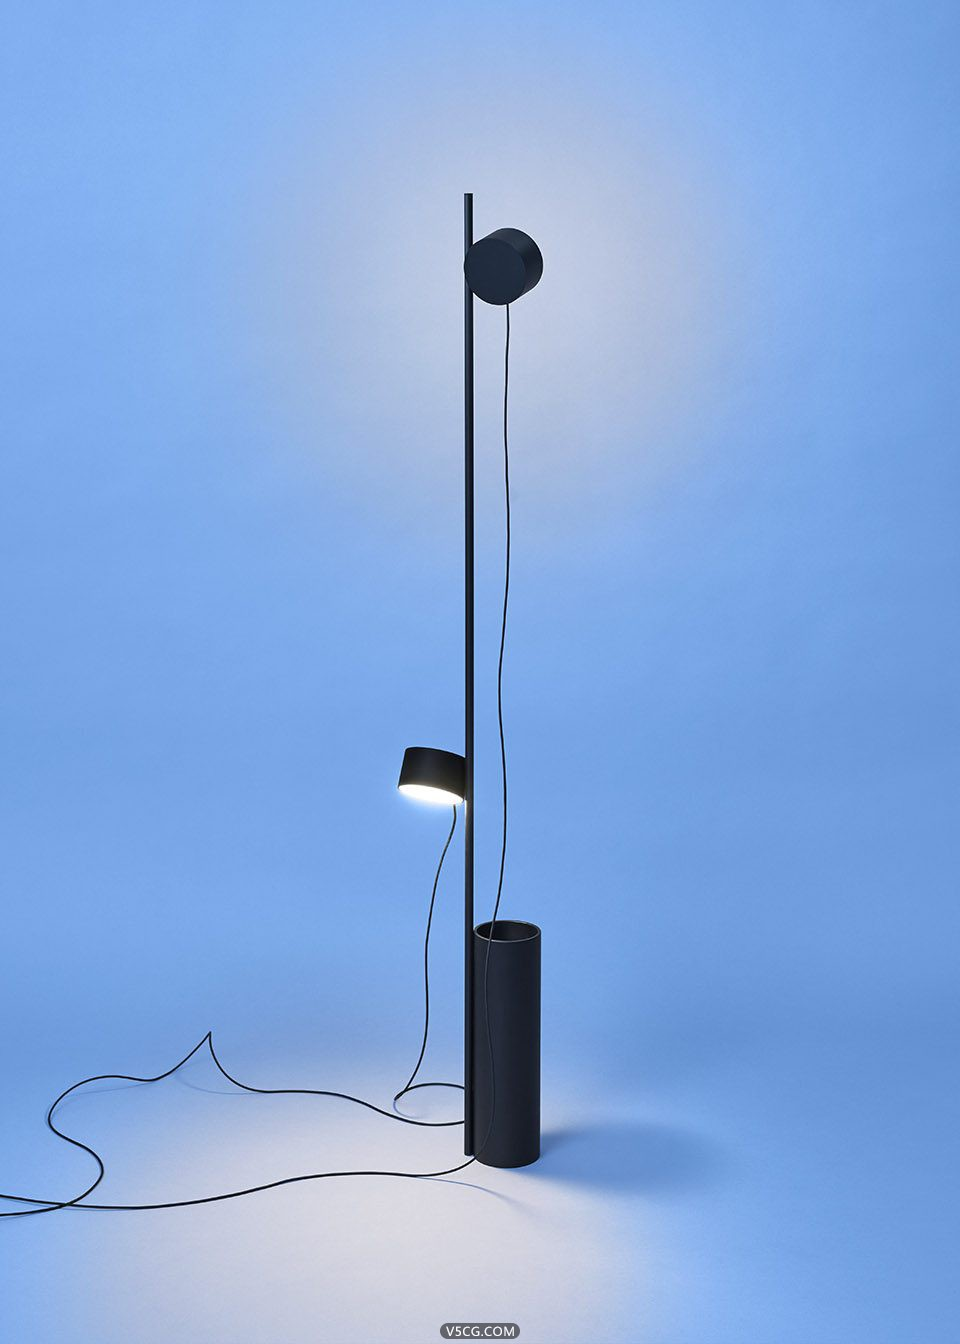 006-Lamp-Family-by-Earnest-Studio-960x1344.jpg